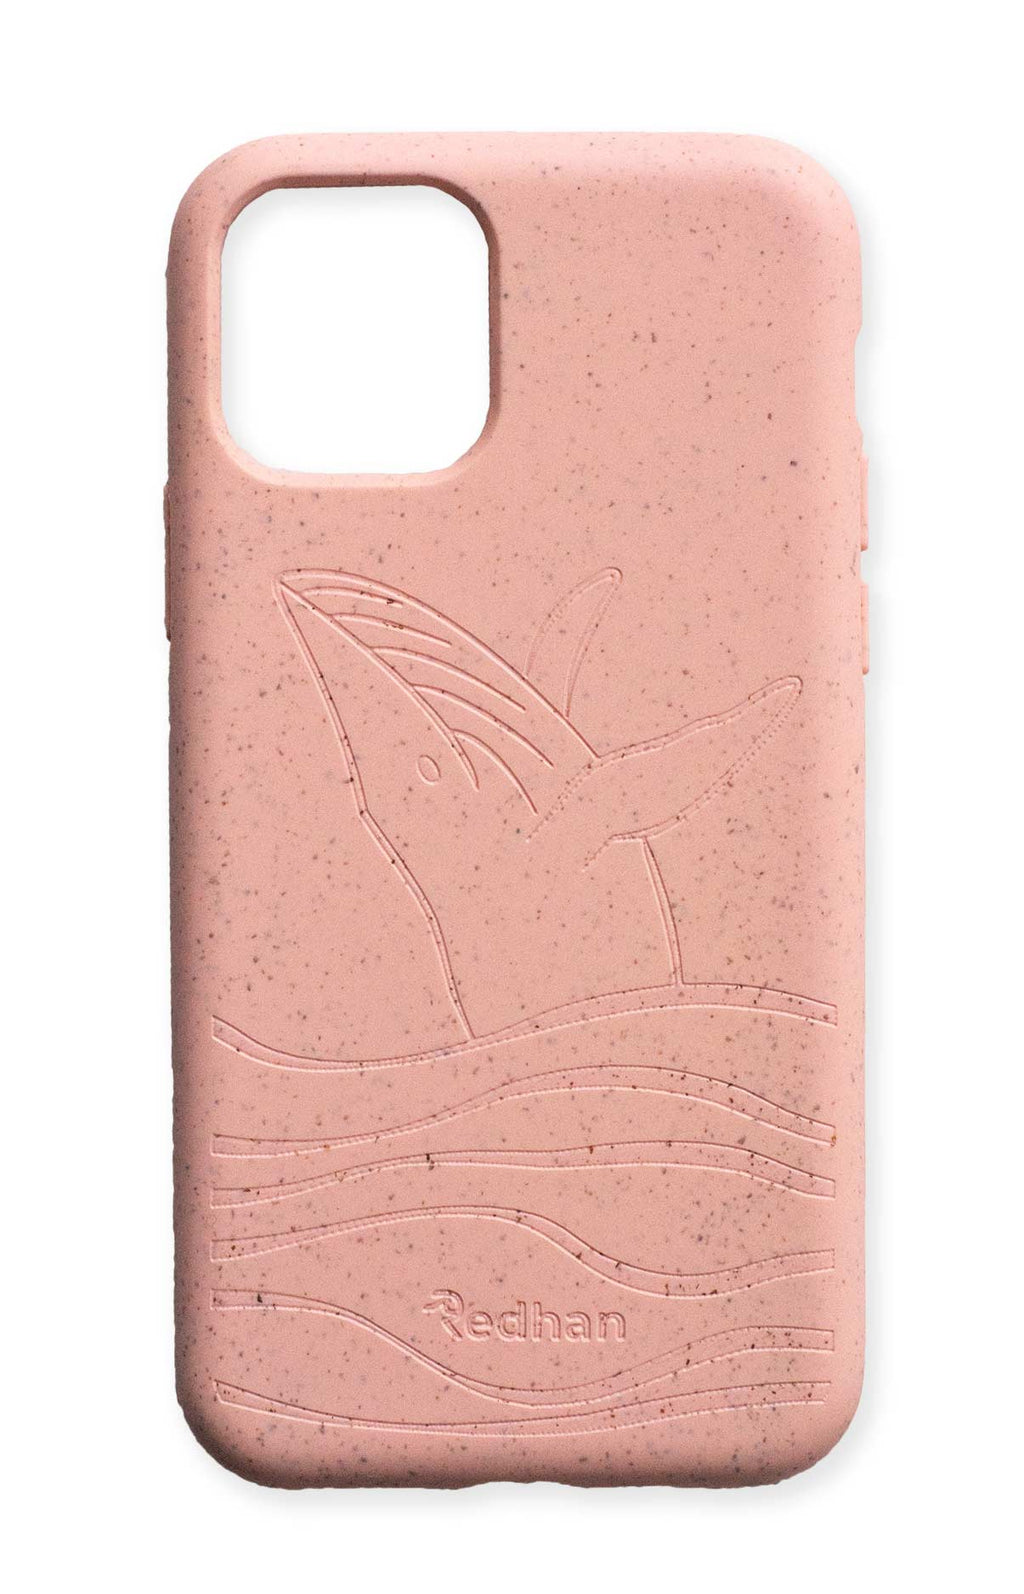 Eco Friendly iPhone 11 Pro Phone Case - Whale 2.0 in Blush Pink